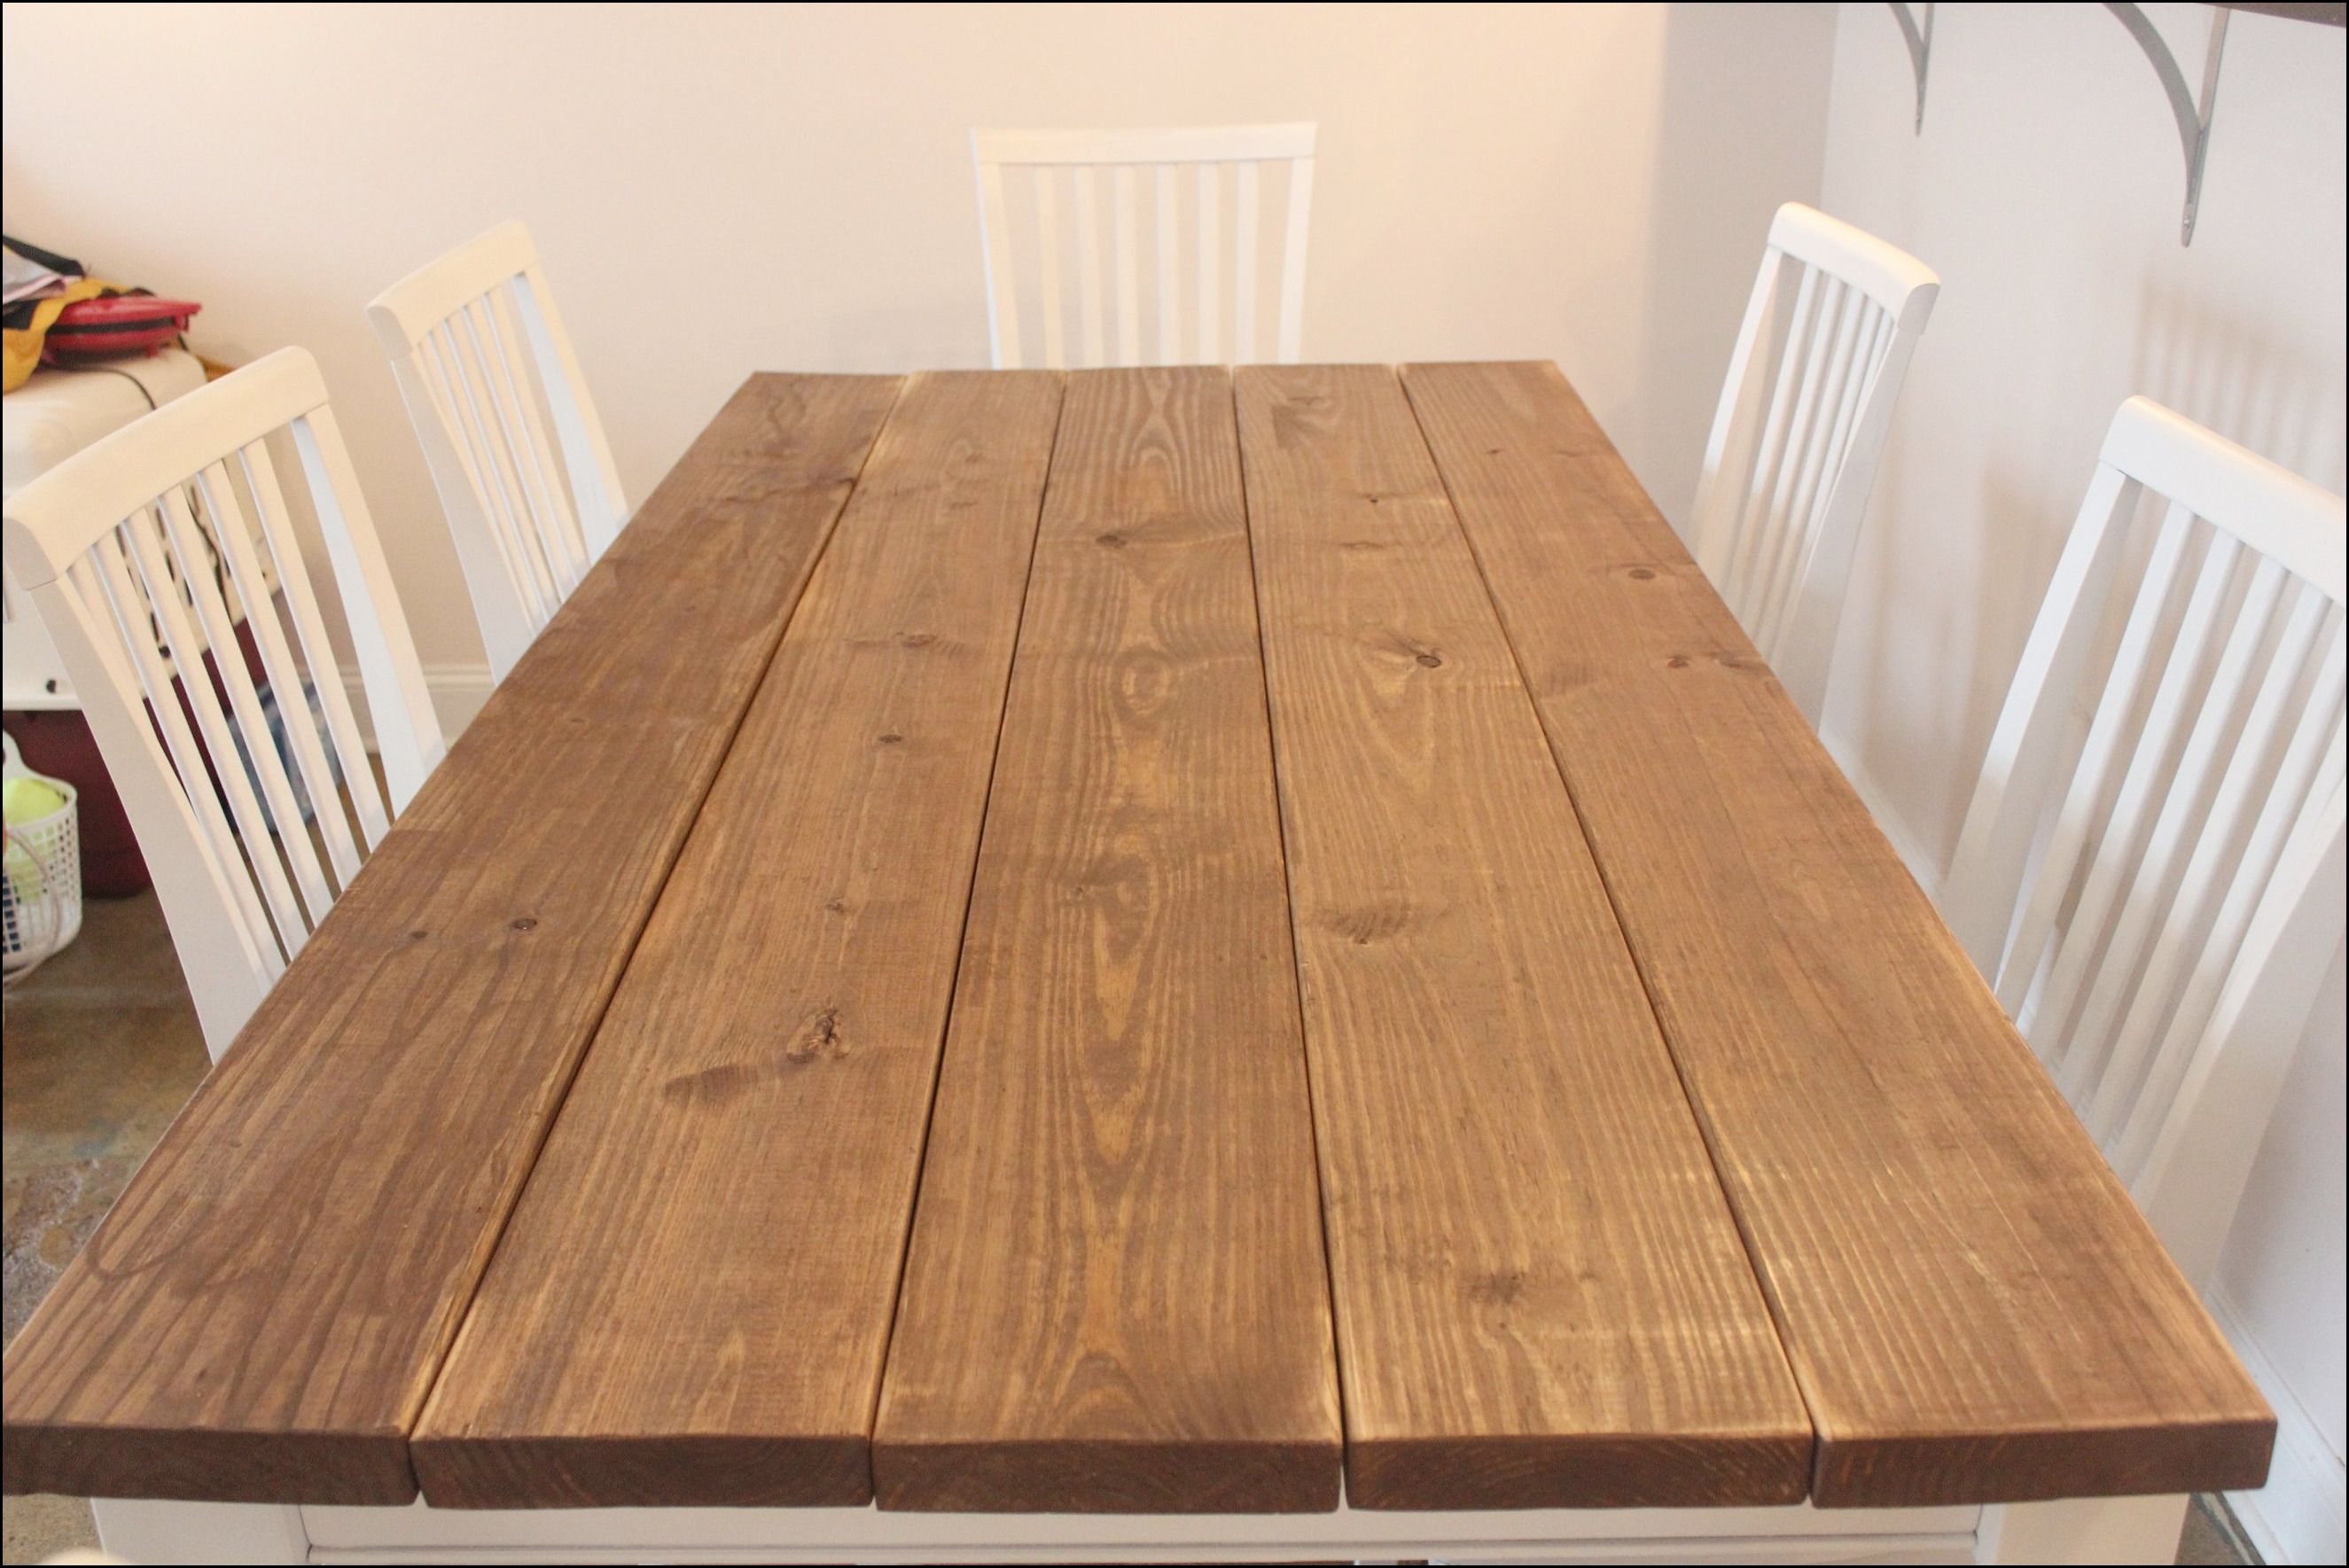 Table Tops Home Depot 1stlady Kitchen Table Wood Kitchen